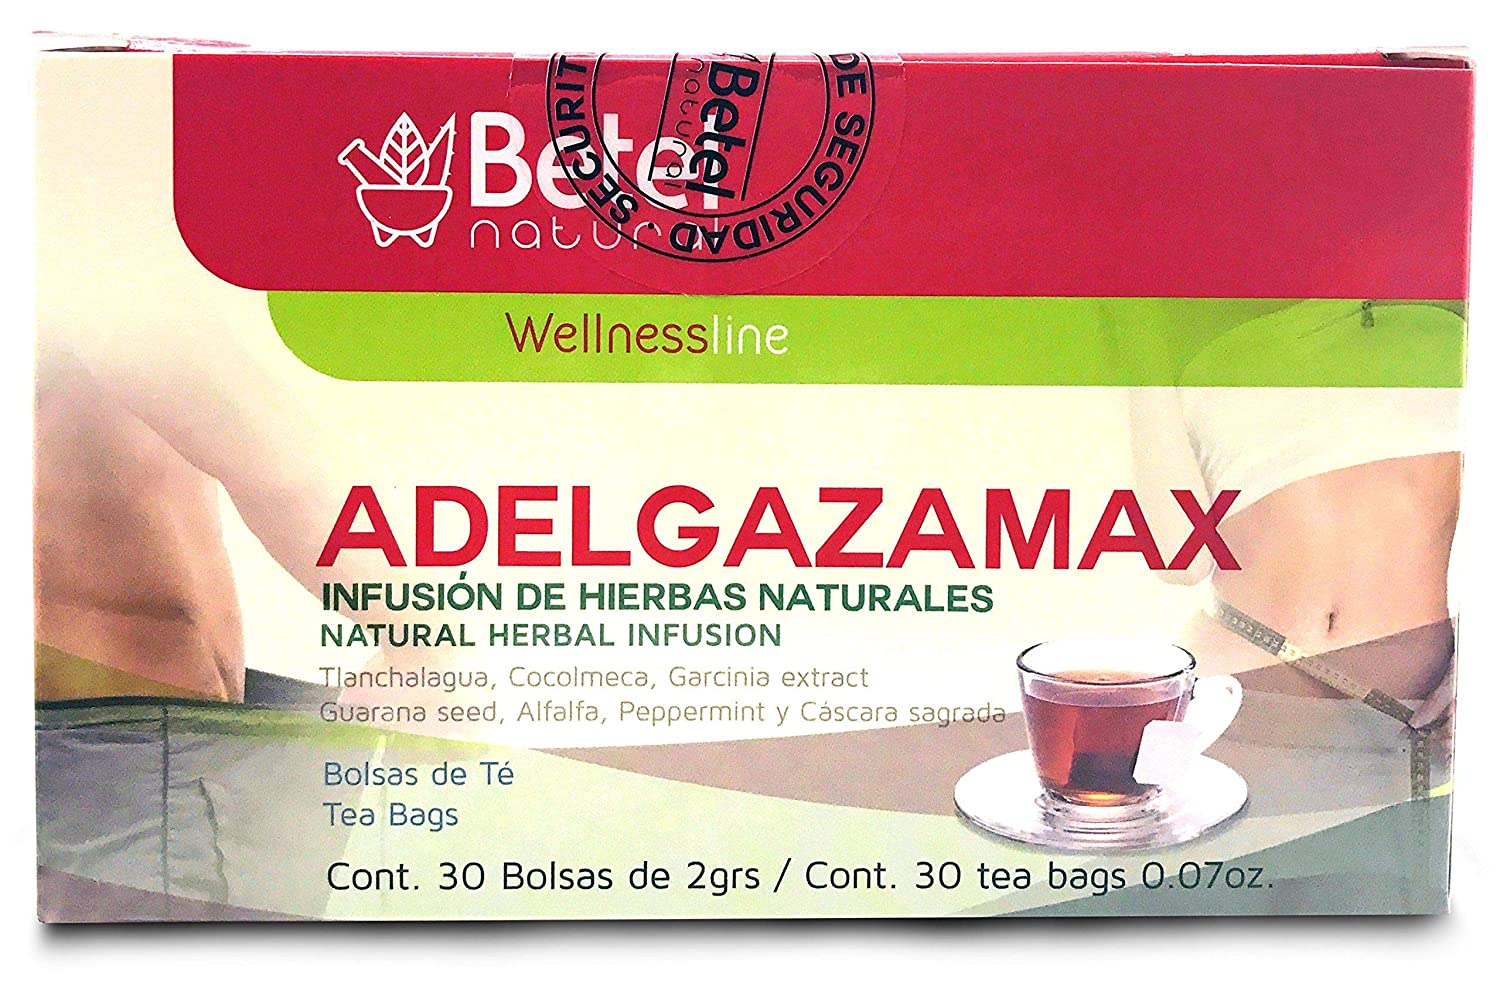 Adelgazamax Tea - Weight Loss Supplement with Cocolmeca & Garcinia Cambogia - 30 Count Betel Natural